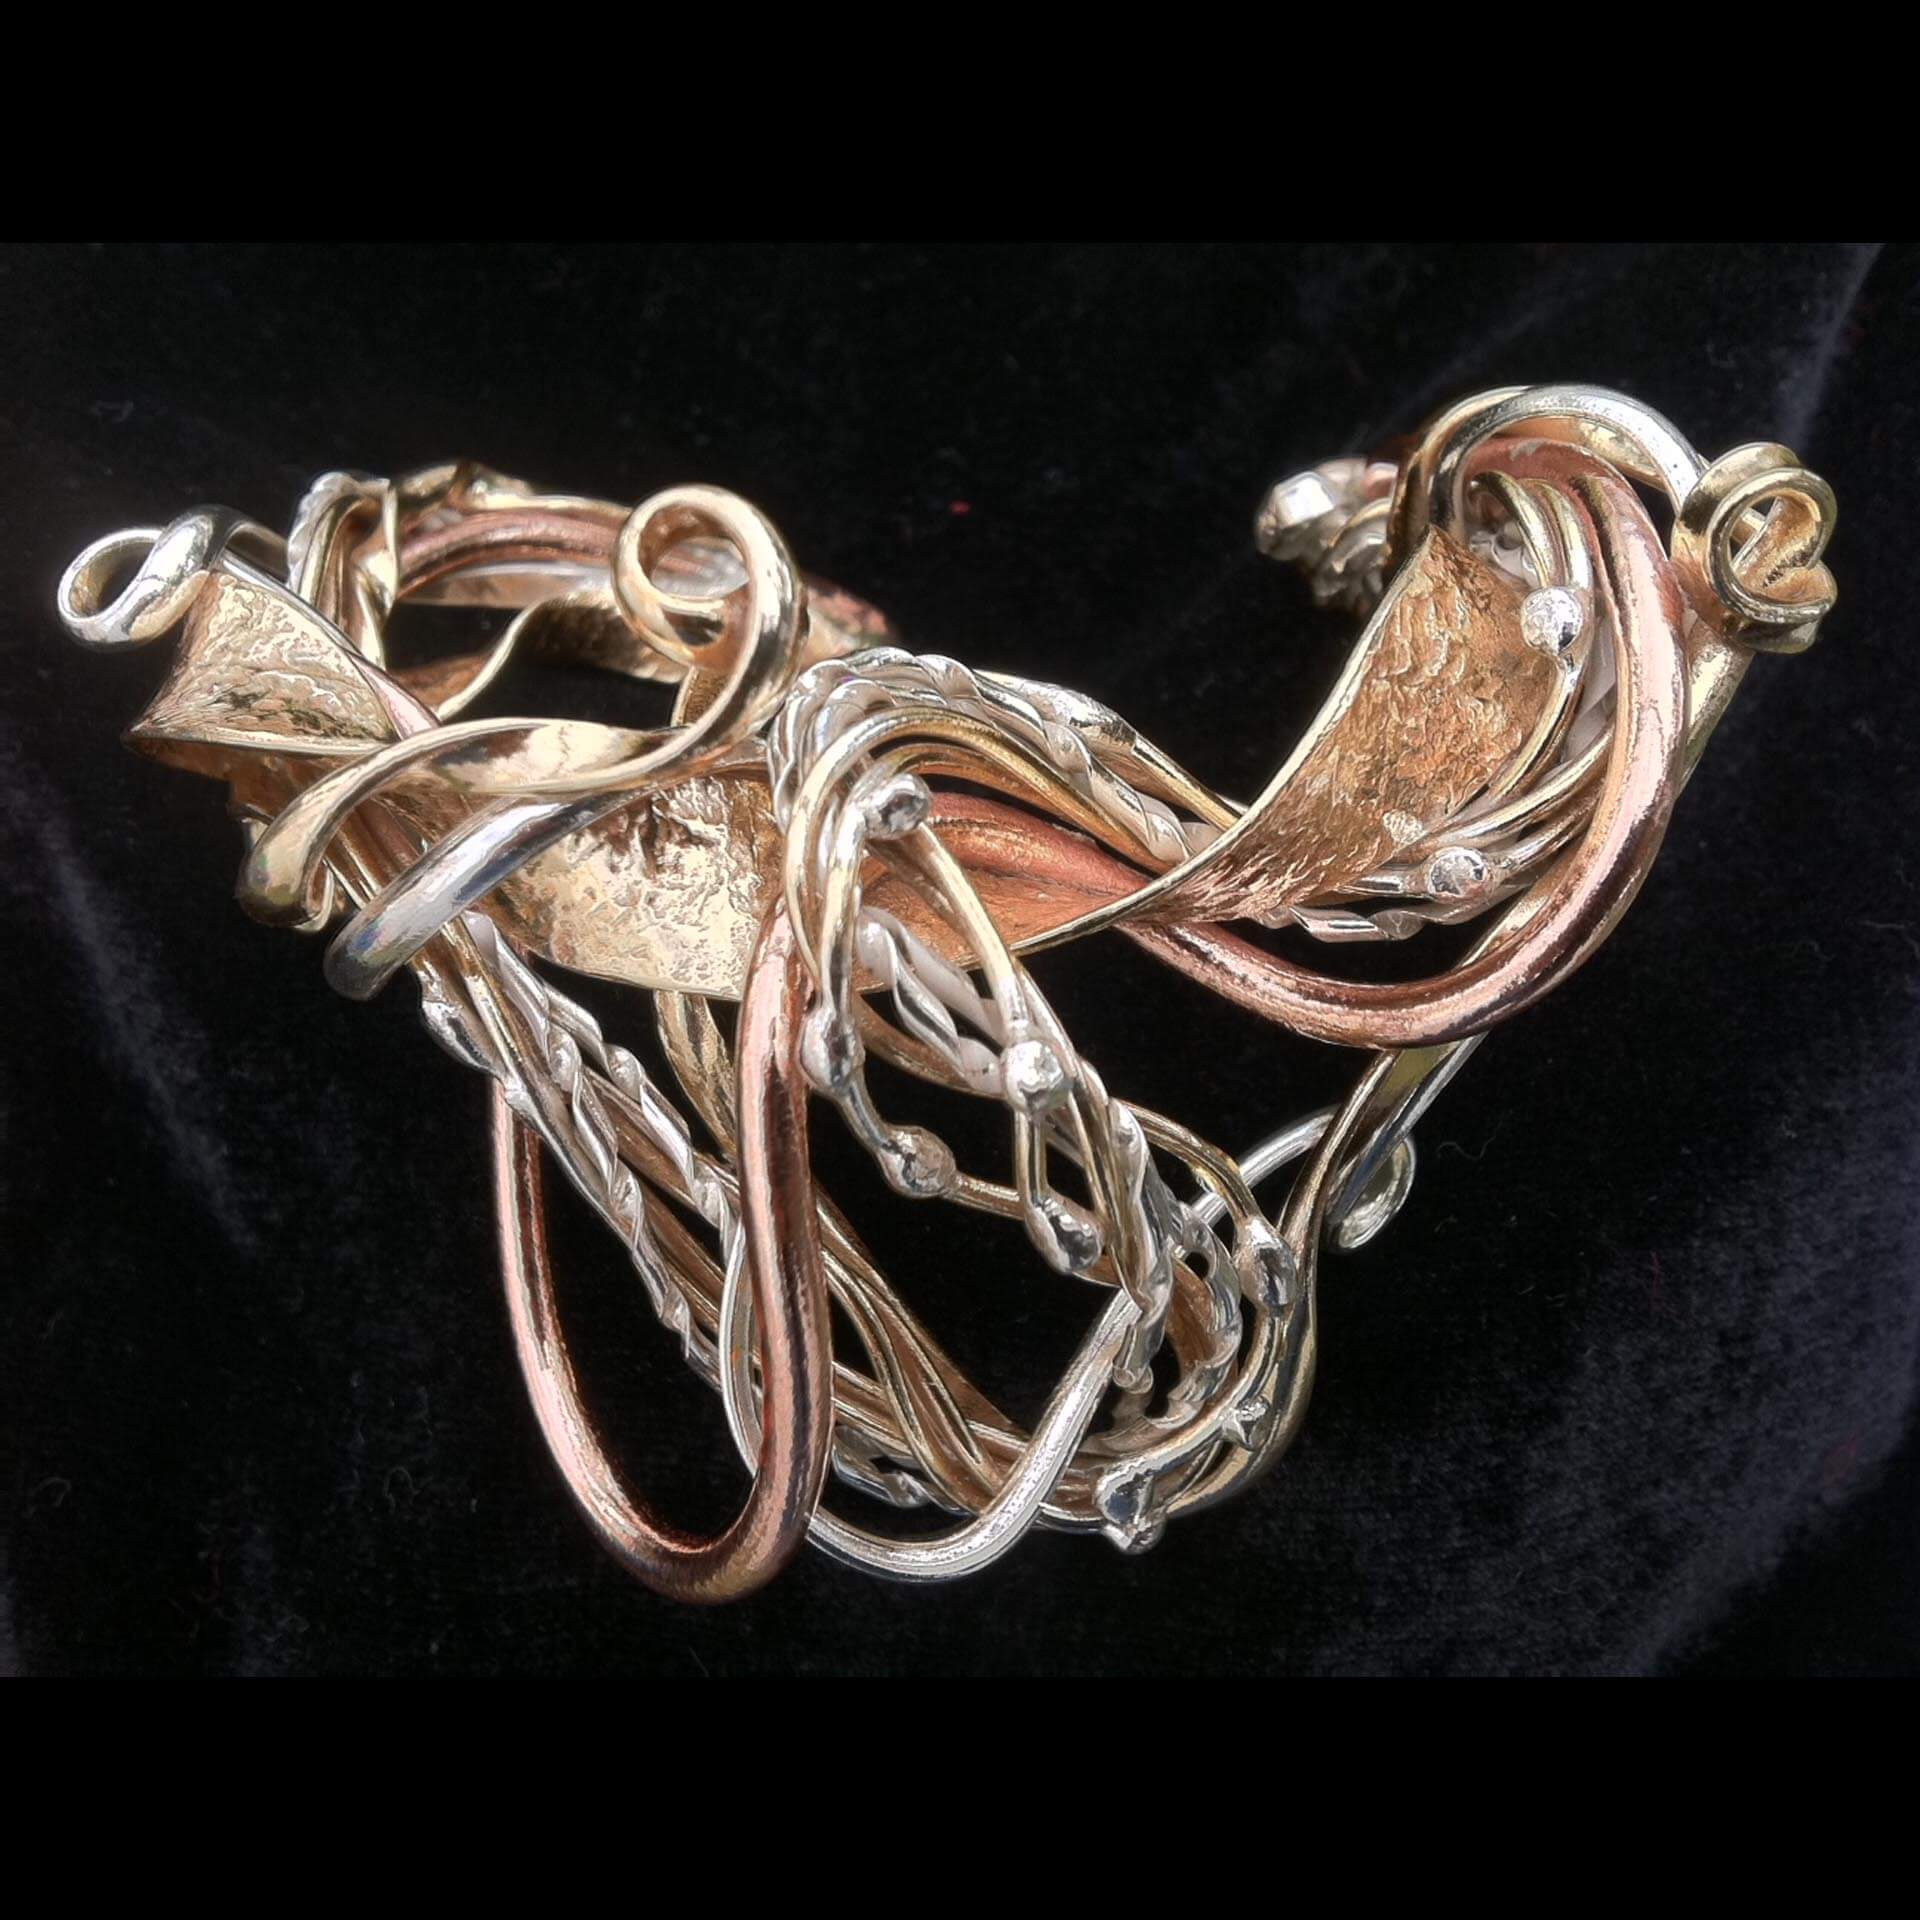 Jewelry by Hammer& Torch, Inc. Woodstock-New Paltz Art & Crafts Fair, Handcrafted Jewelry